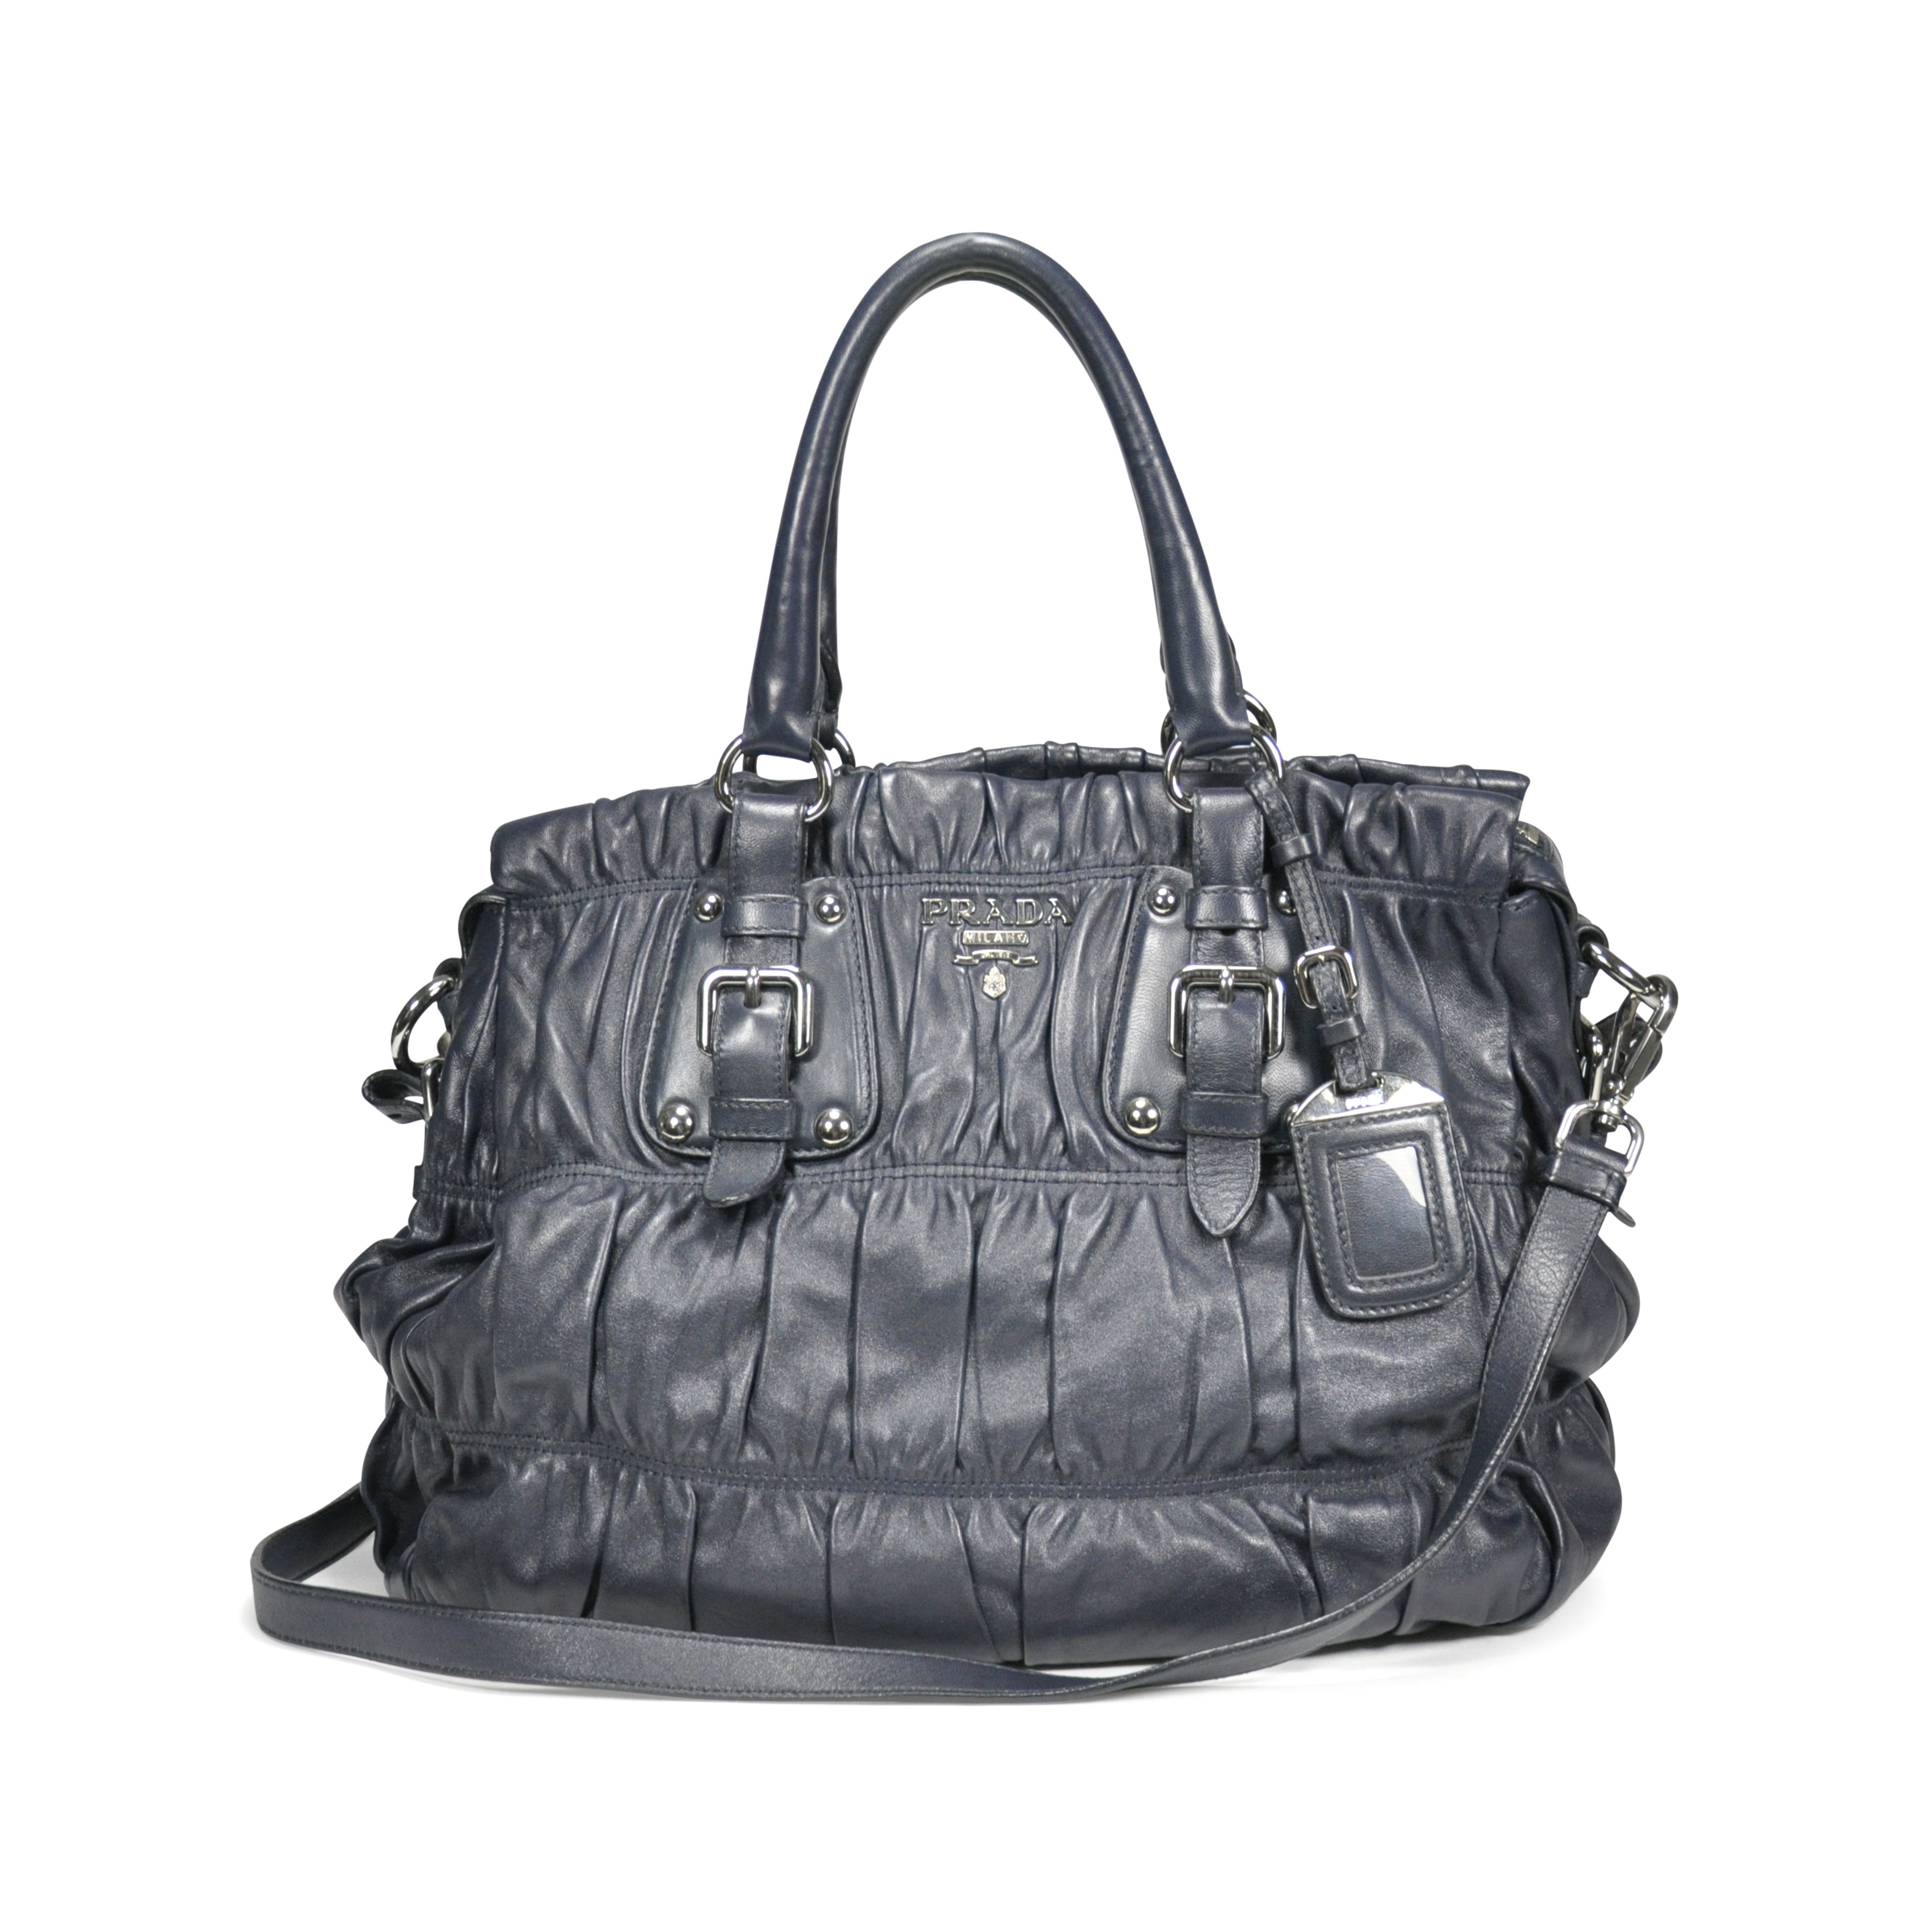 259348e9baa4 Authentic Second Hand Prada Nappa Gaufre Bag (PSS-199-00004) | THE FIFTH  COLLECTION